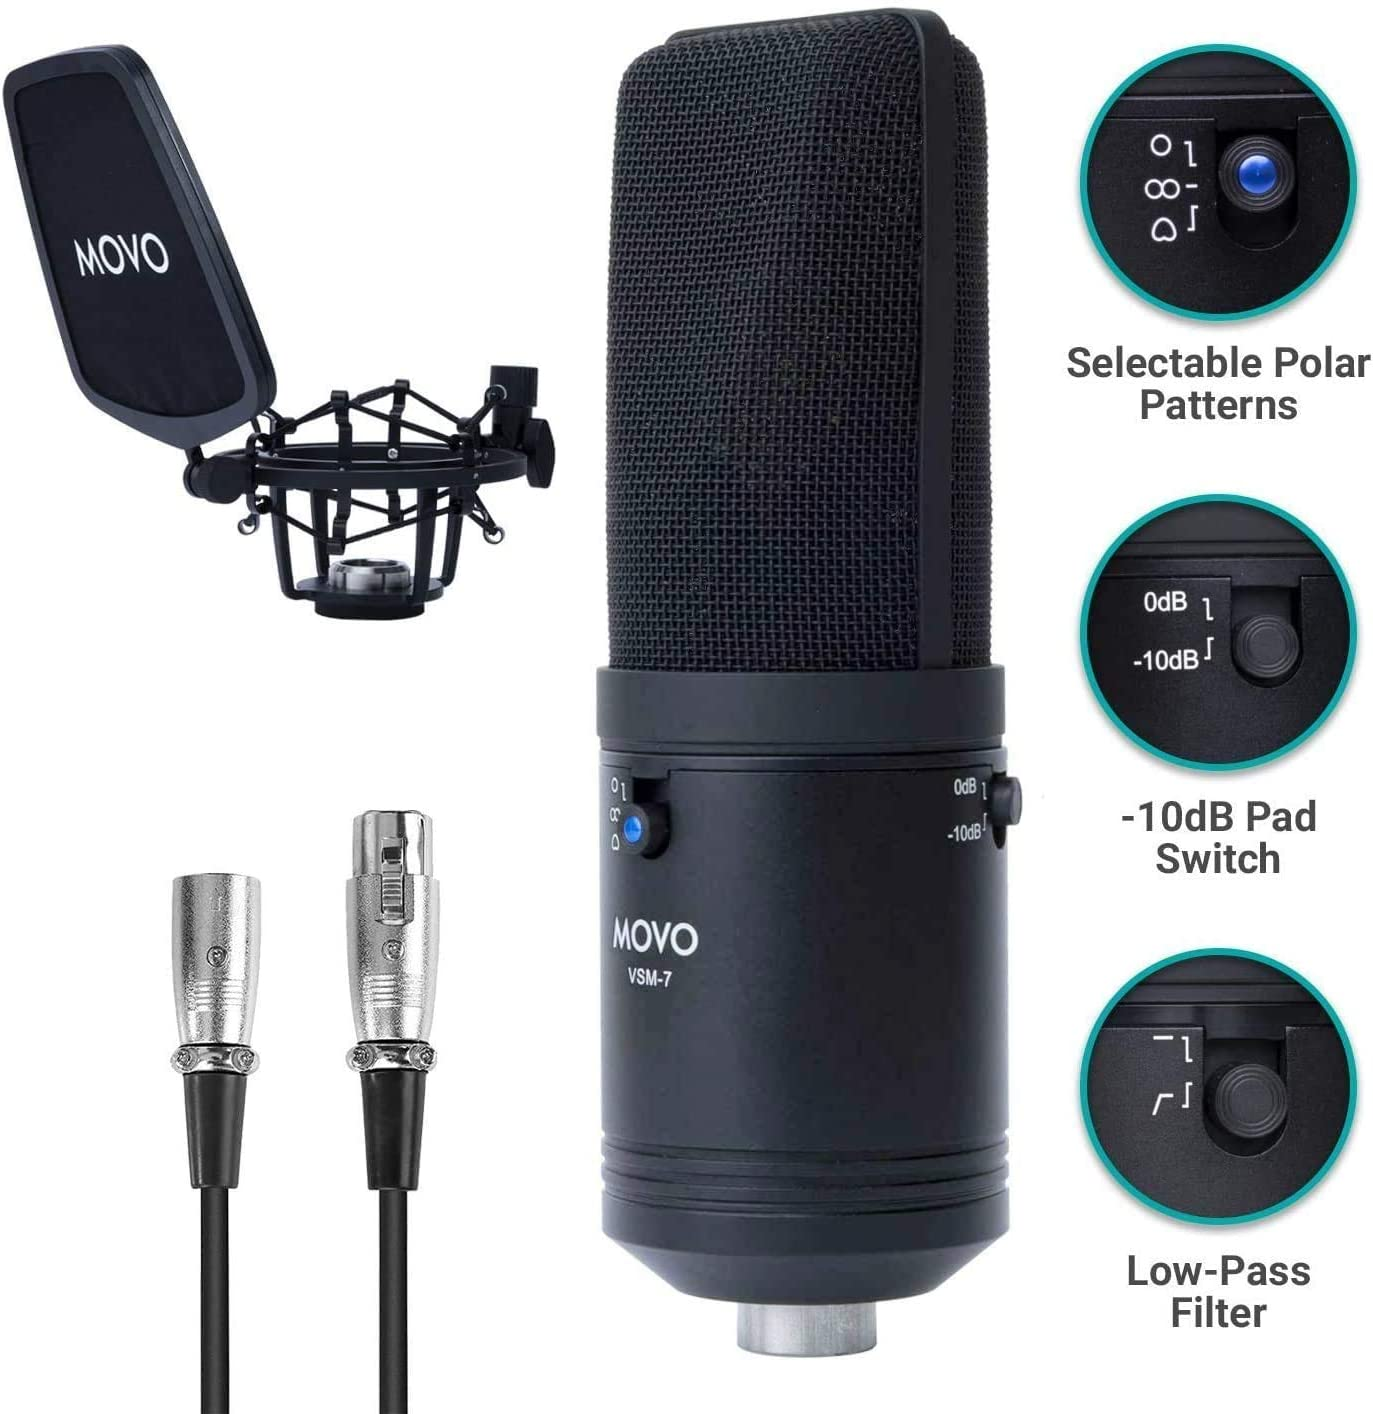 Movo VSM-7 Large Diaphragm, Multi-Pattern Studio Condenser Microphone with Shock Mount, Pop Filter, and XLR Cable - Studio Microphone for Music, Vocals, Podcasting, Gaming, Streaming and More